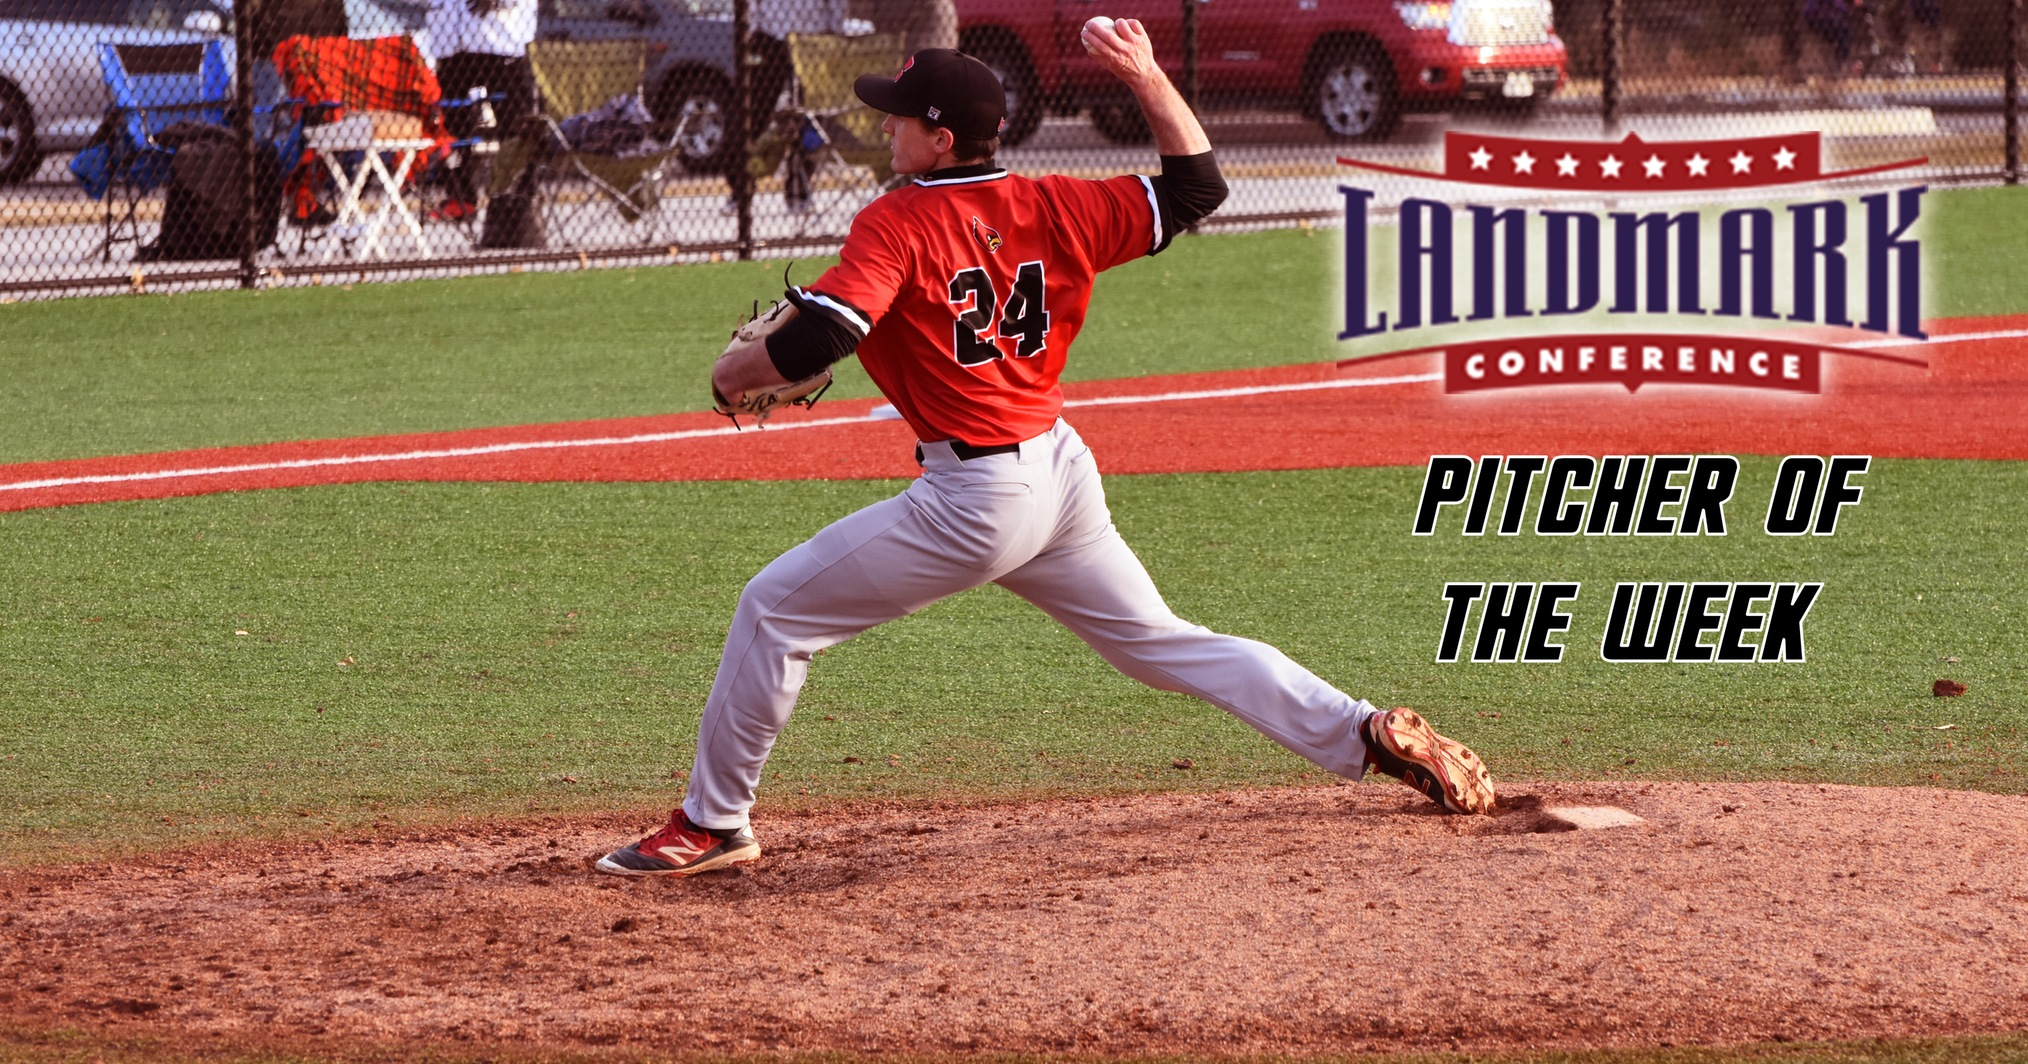 Gately Named Landmark Conference Pitcher of the Week